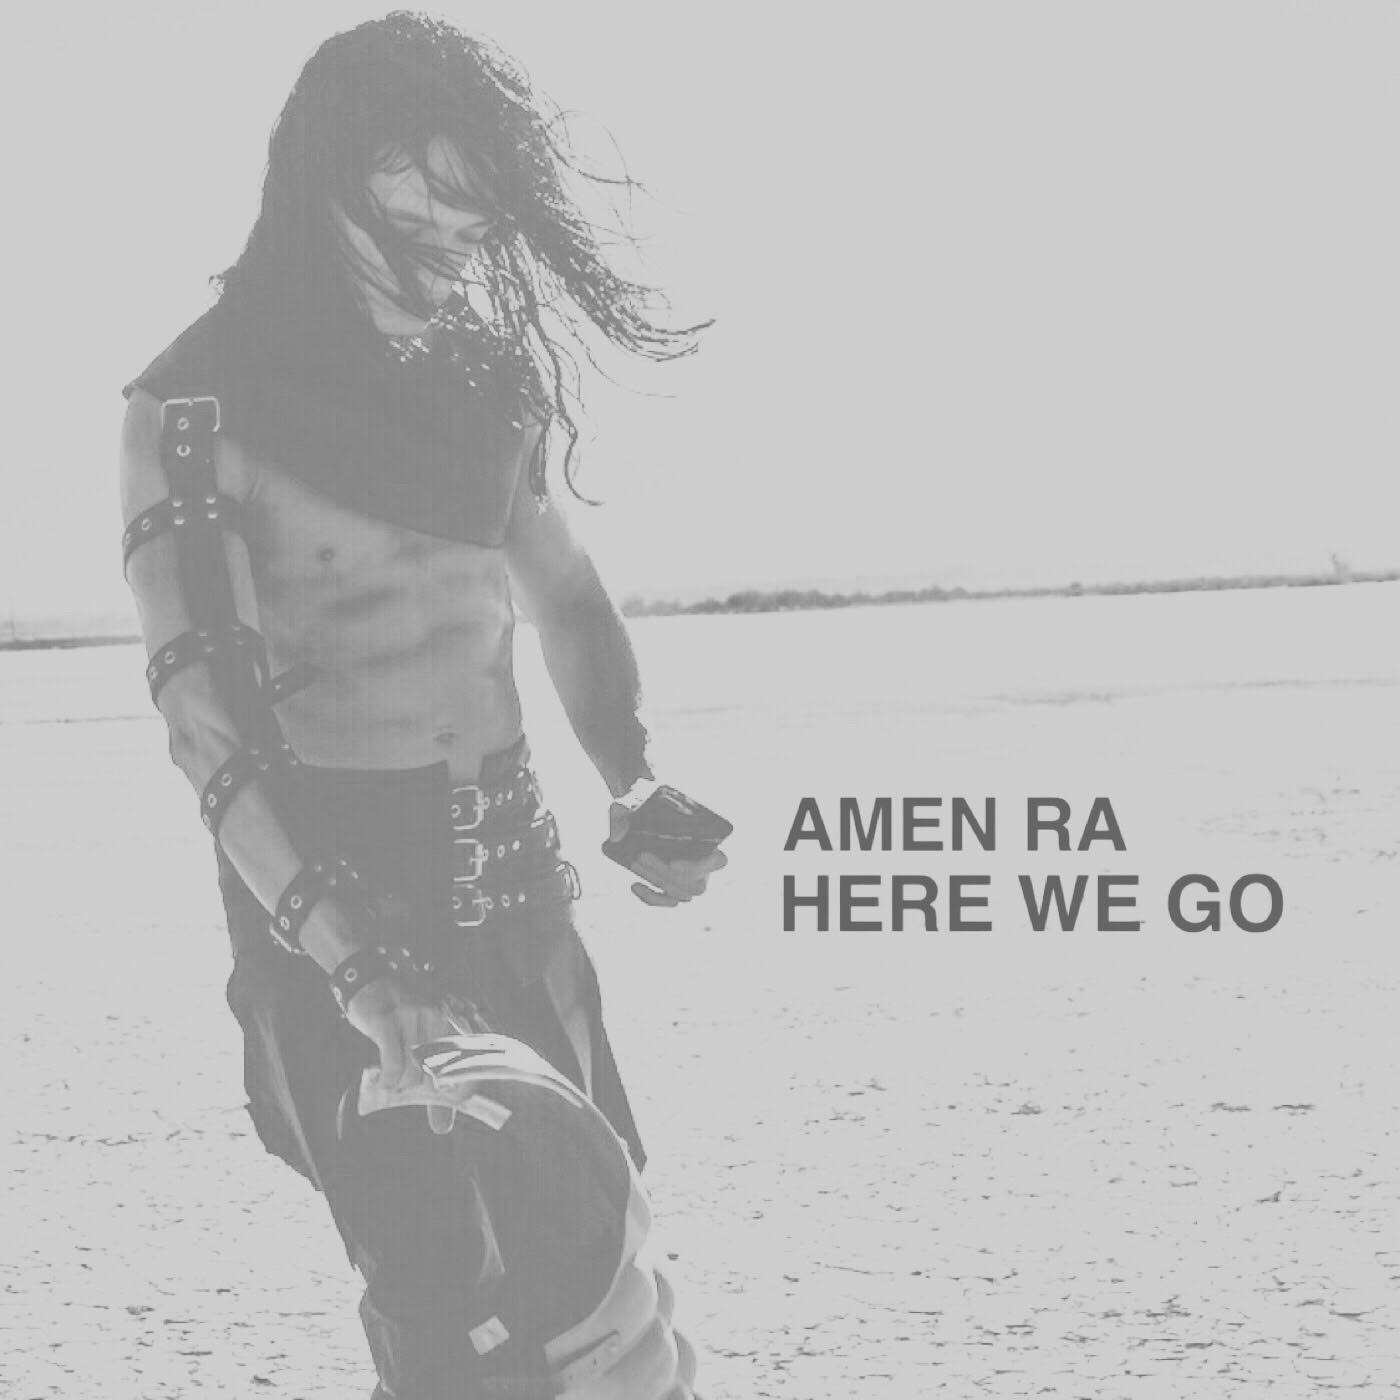 AMEN Ra - HERE WE GO - Cover.jpg